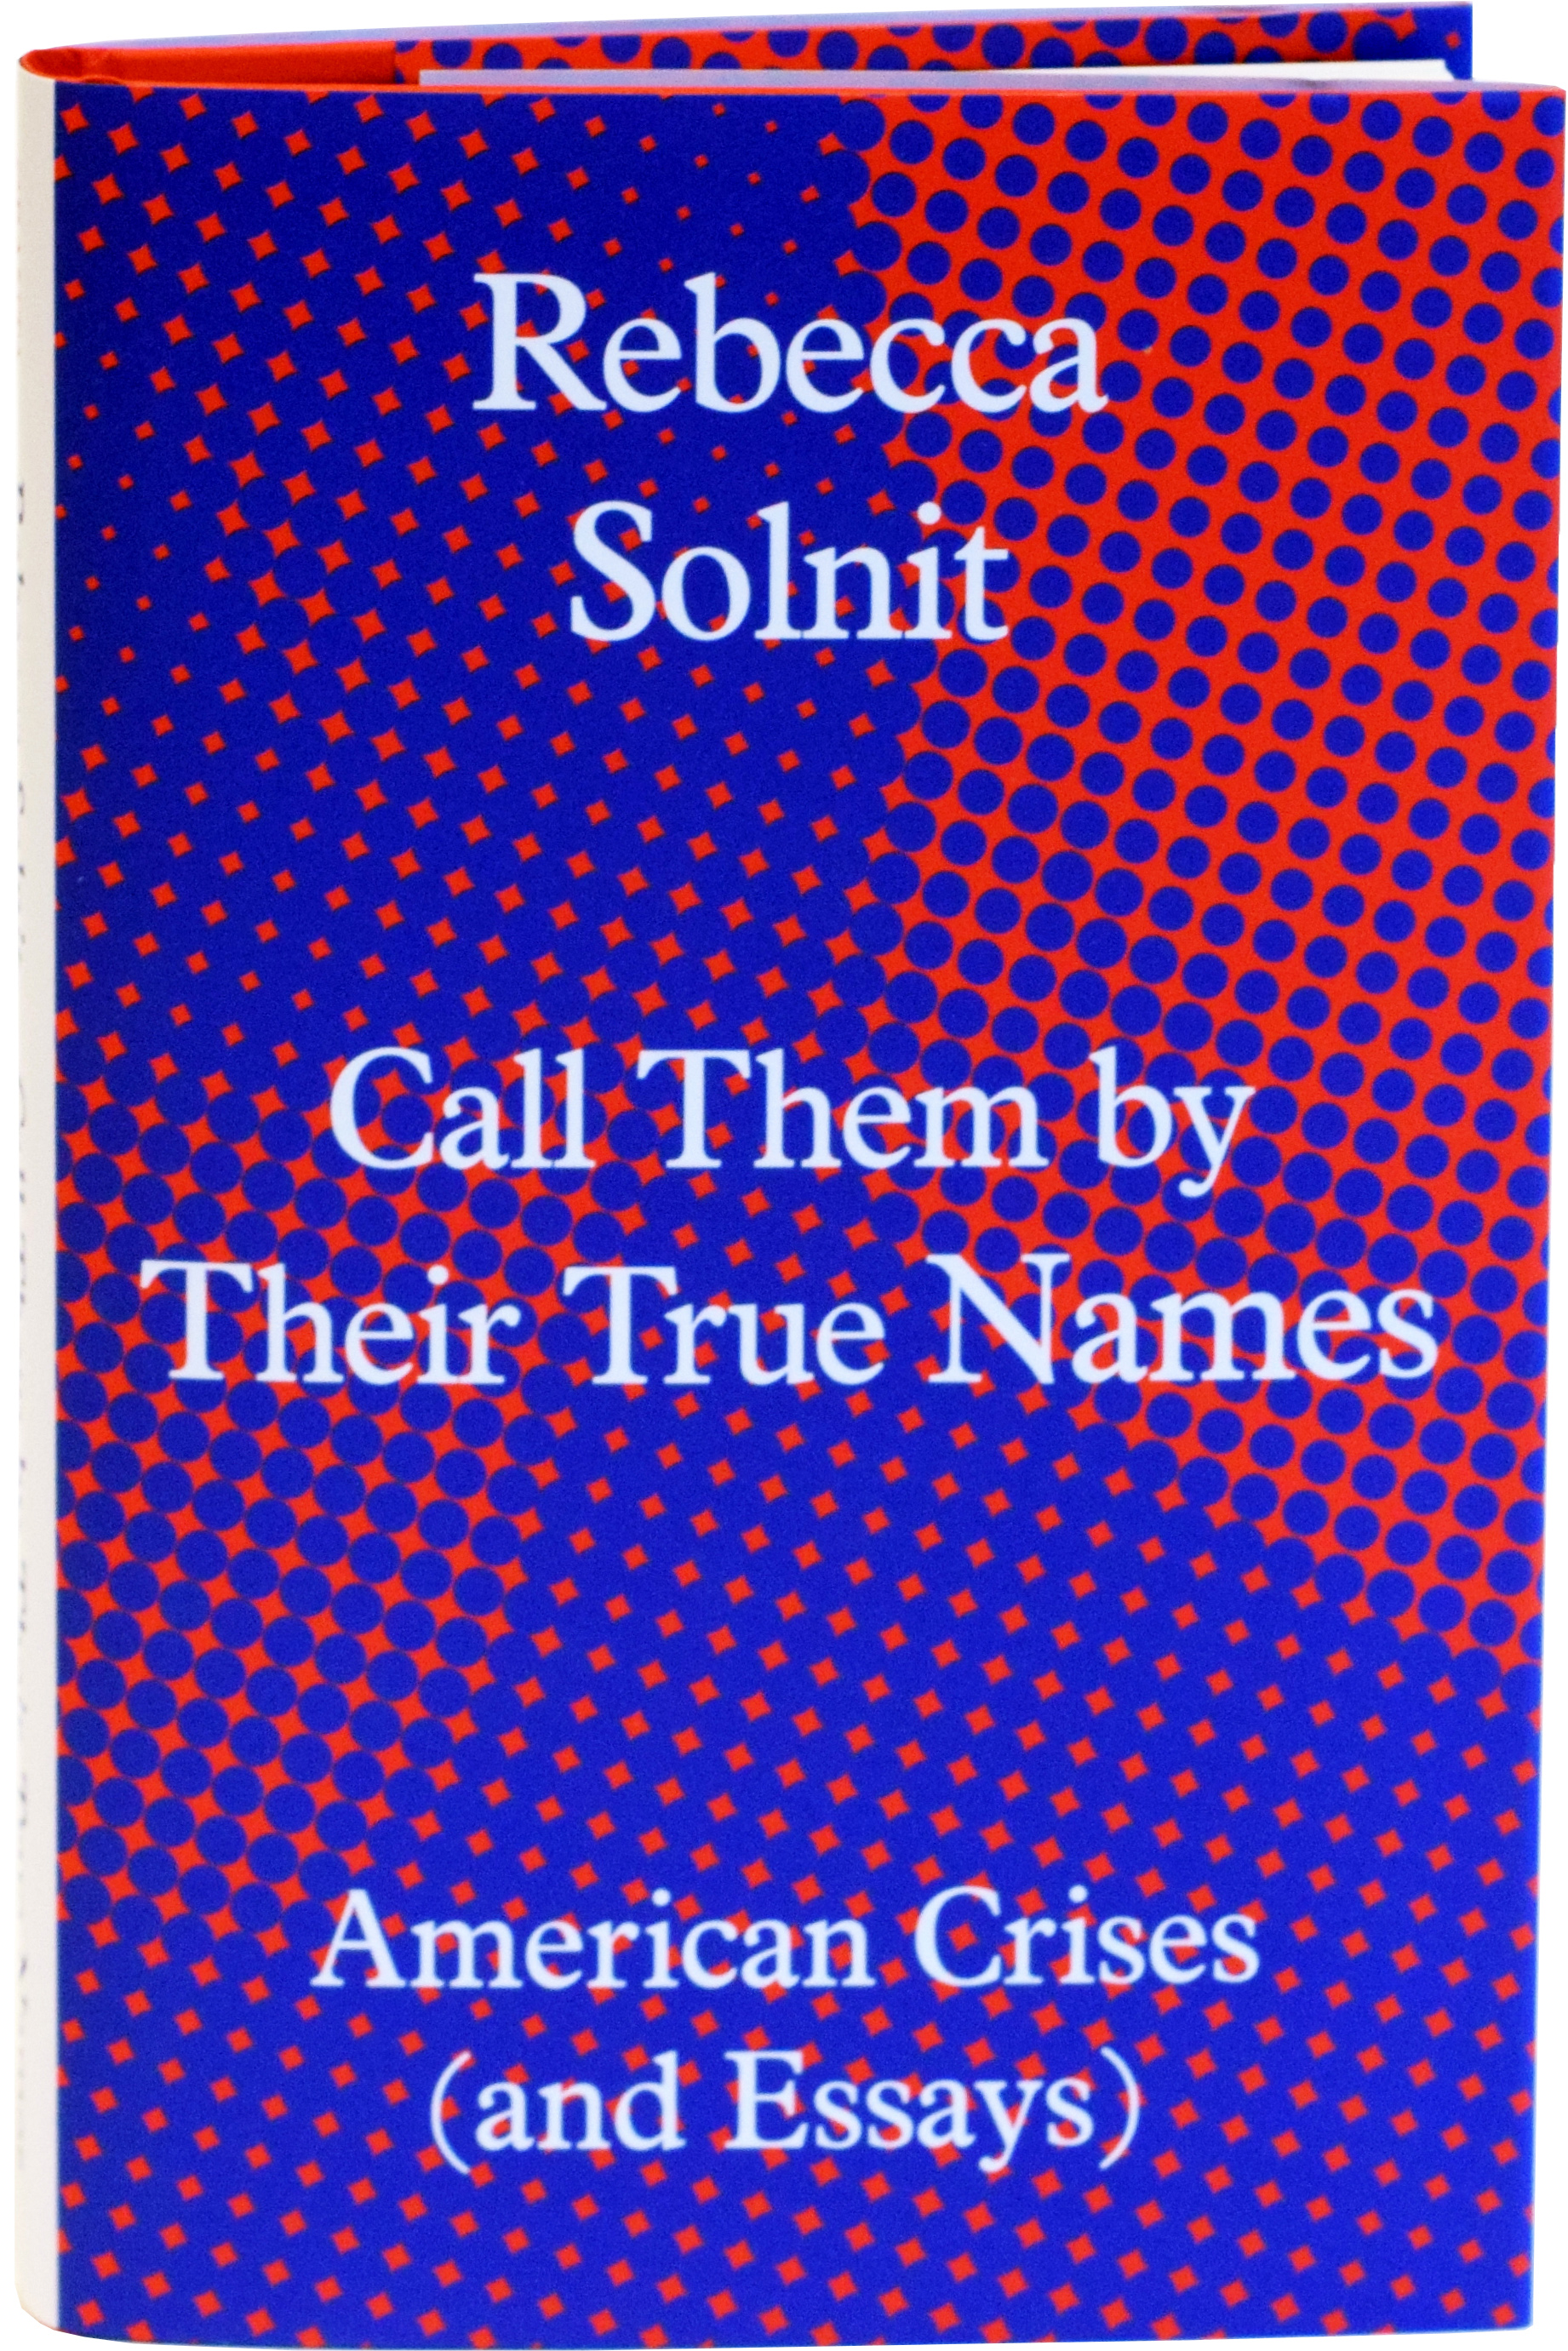 Signed and Numbered First Edition   Call Them By Their True Names: American Crises (And Essays)